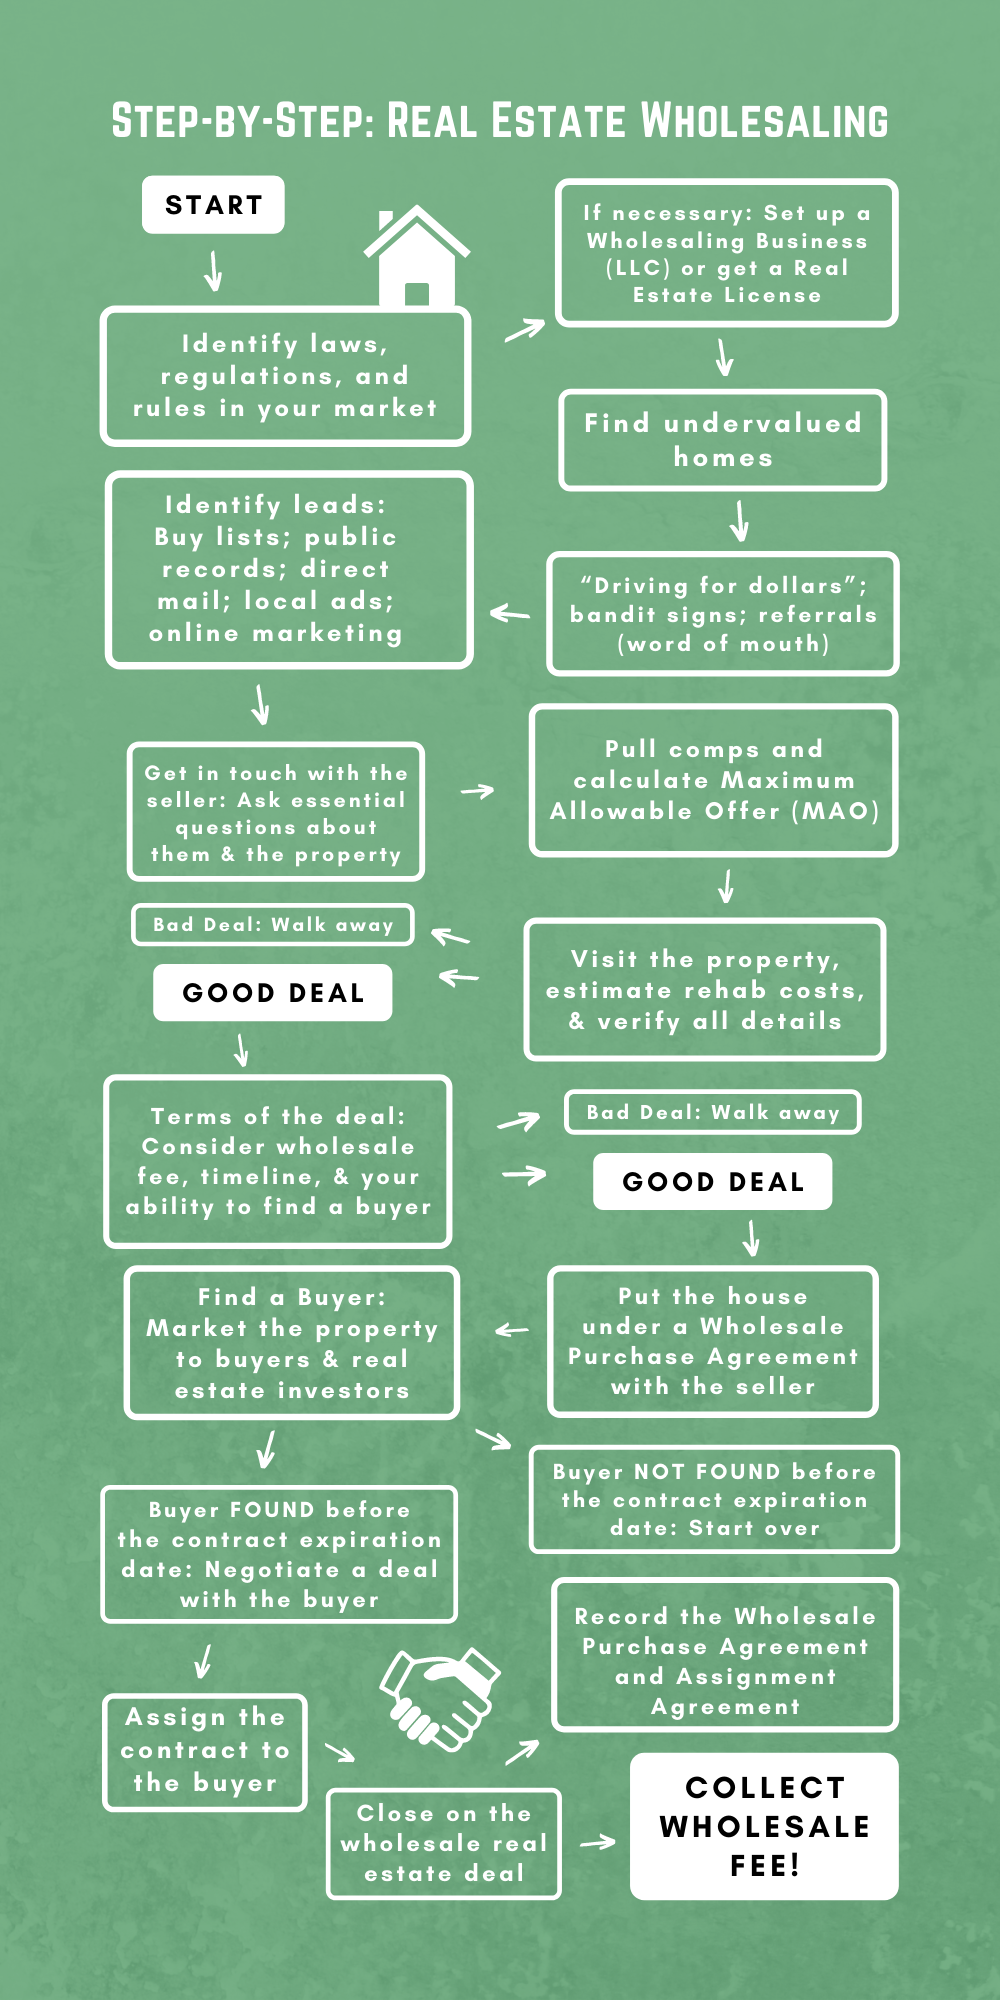 Step-by-Step - Real Estate Wholesaling